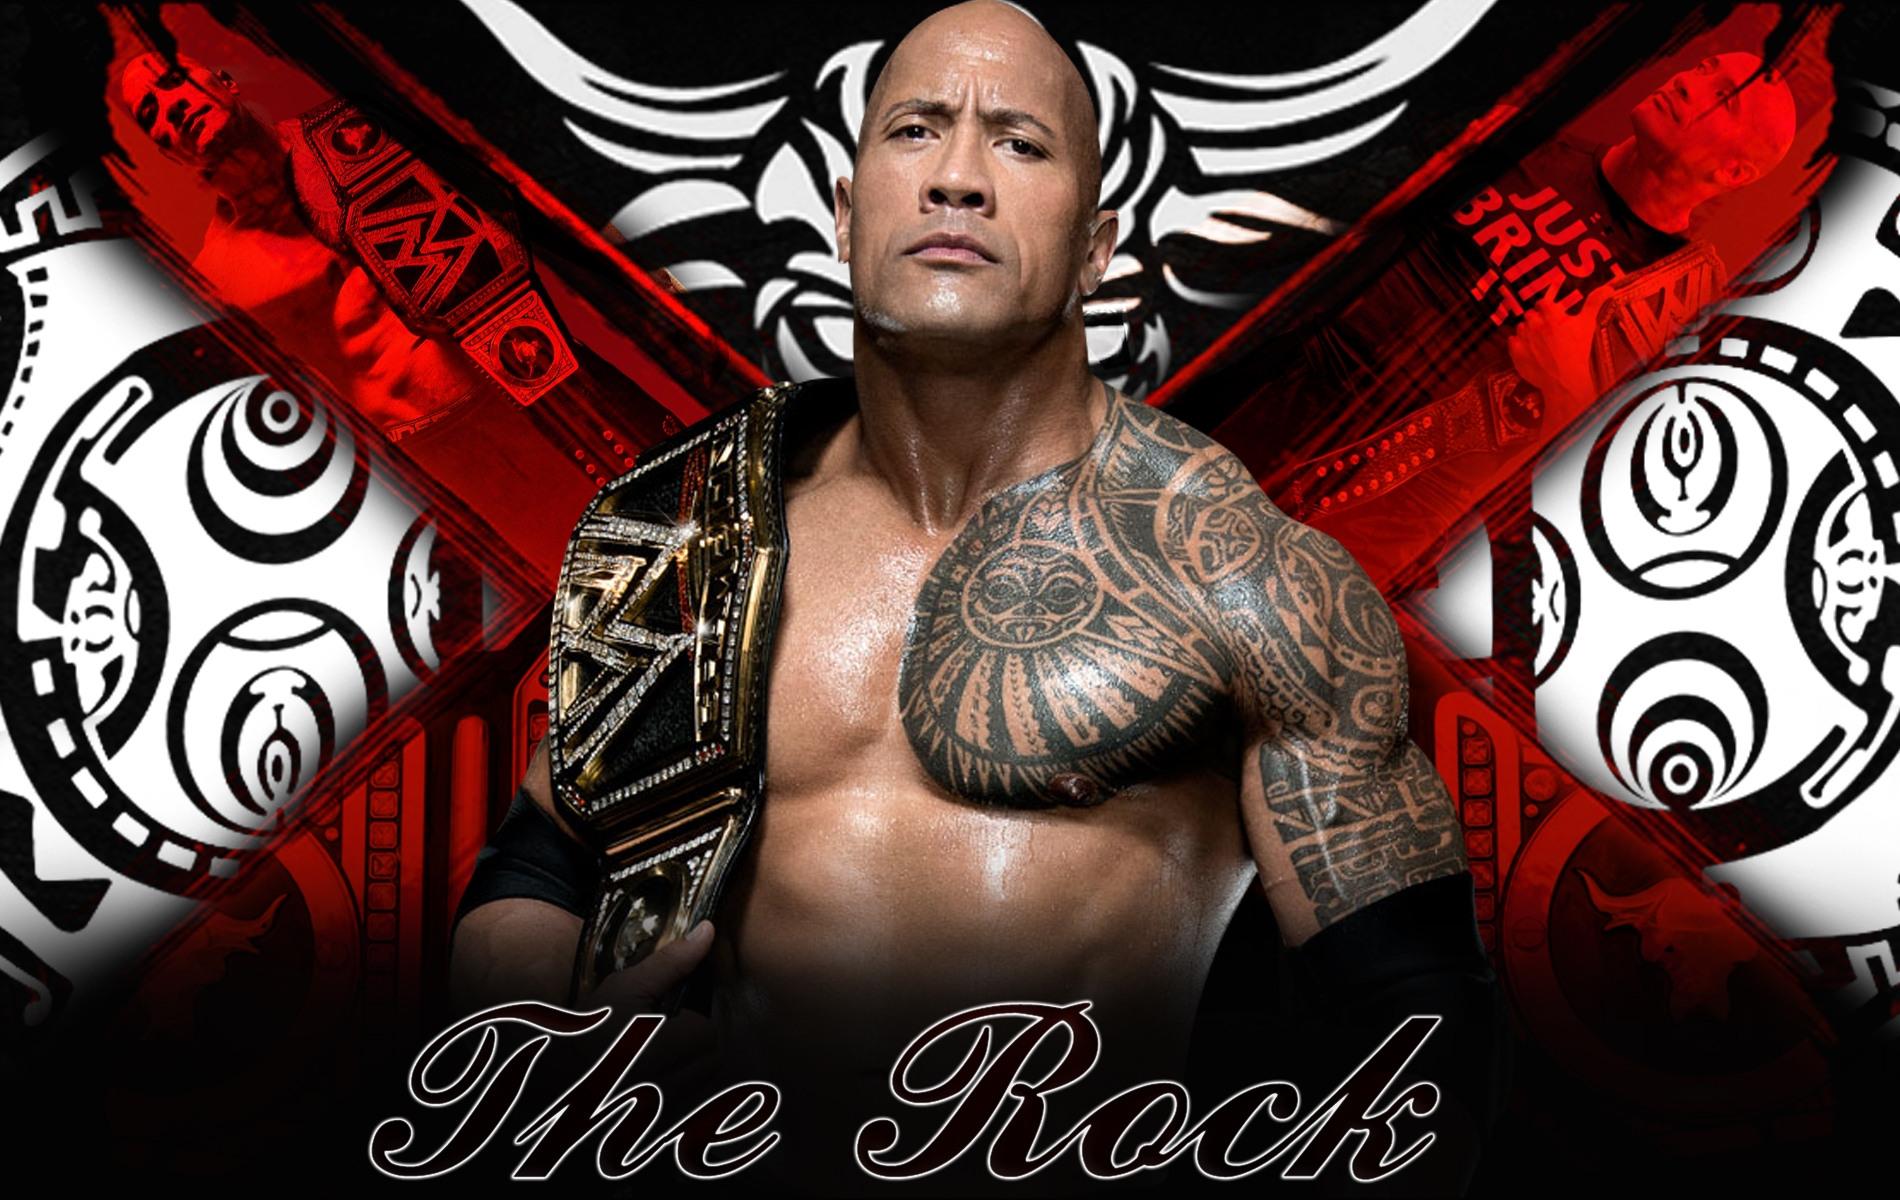 WWE Wallpapers HD Wallpaper